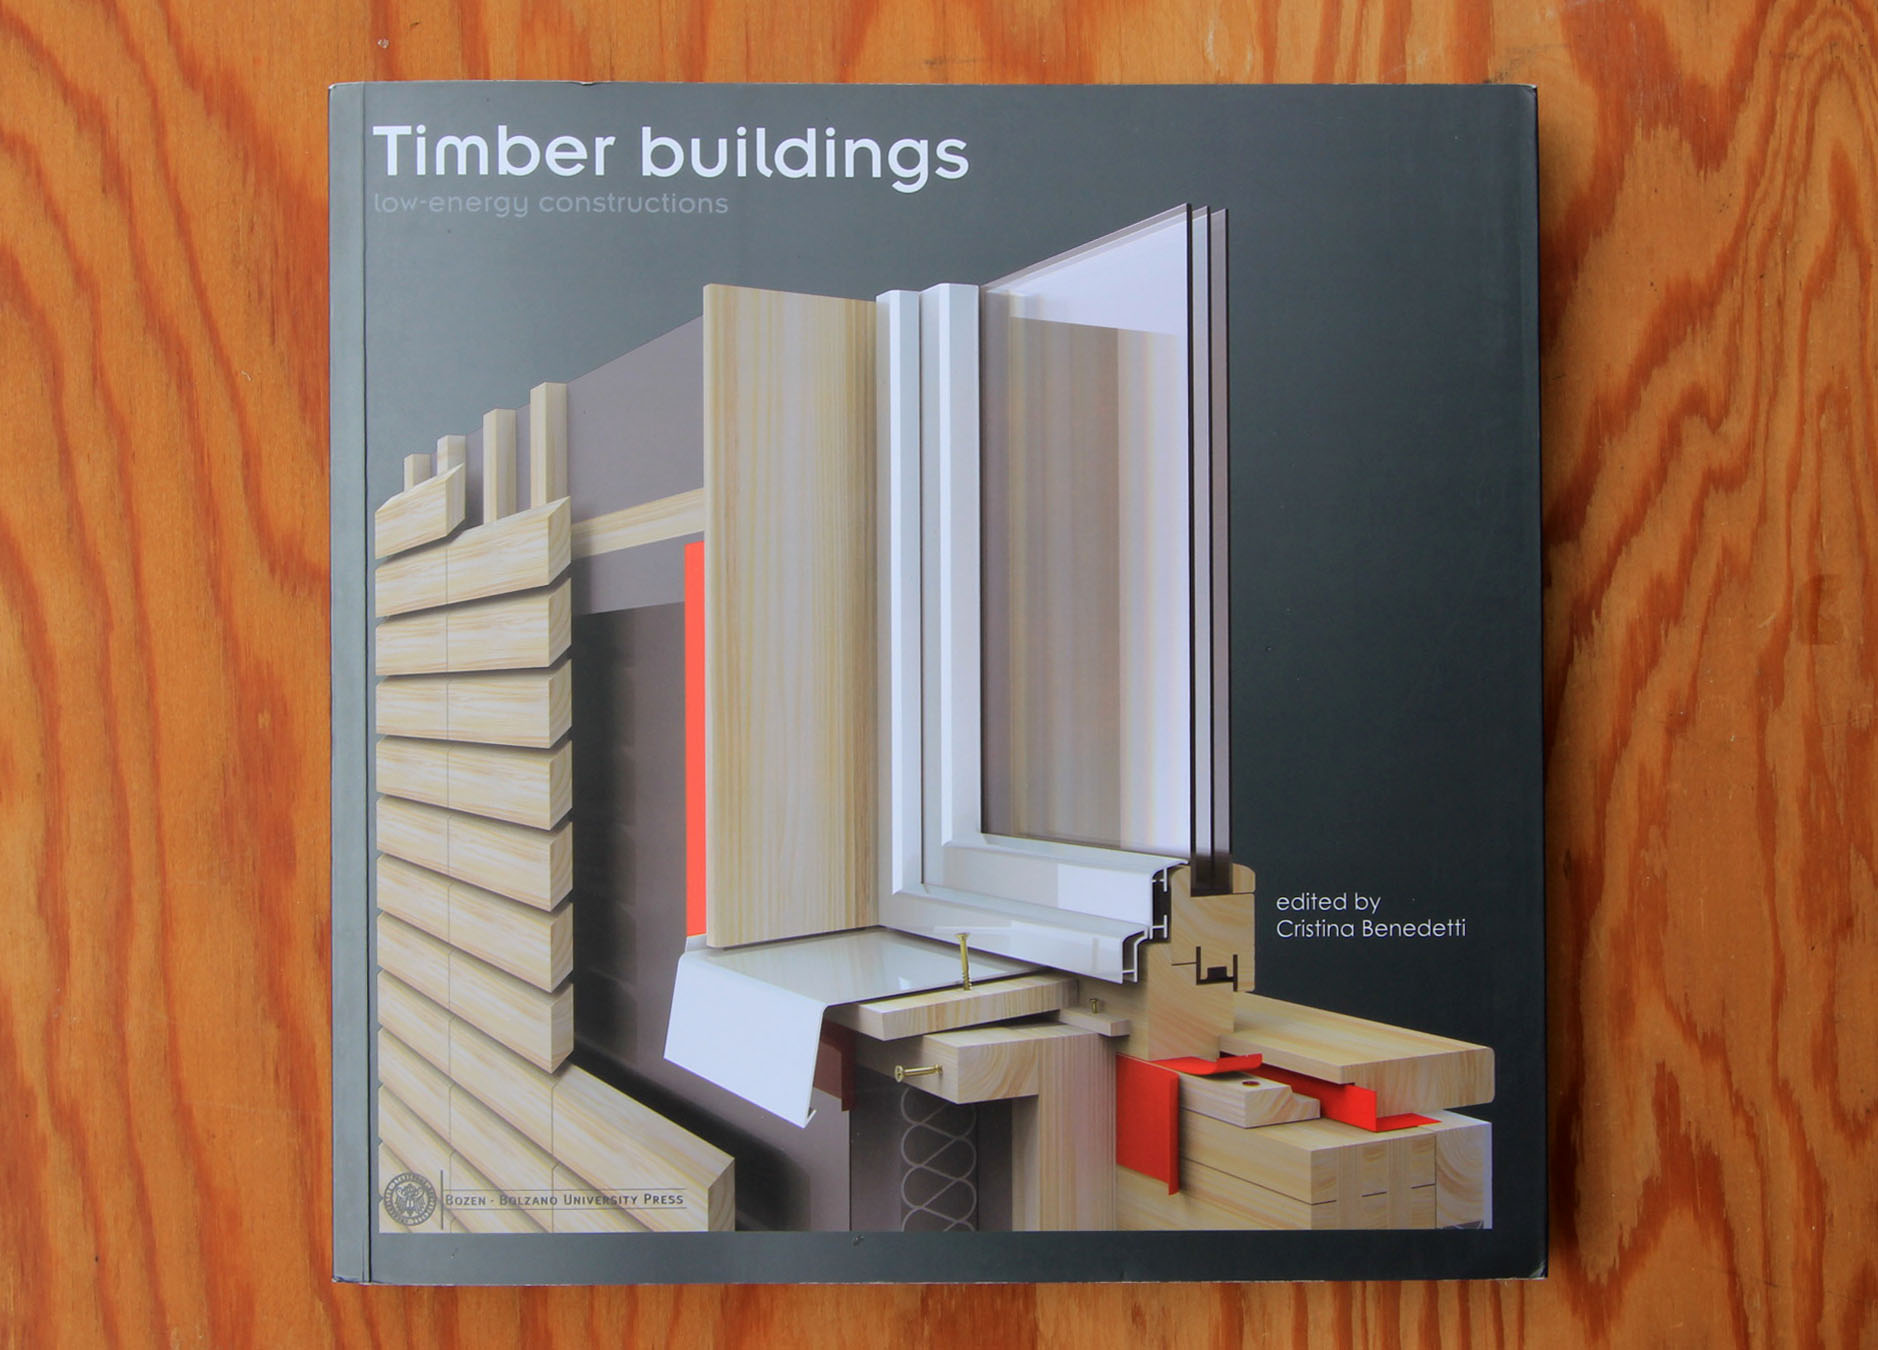 Timber buildingsーlow-energy constructionsー_e0054299_13485450.jpg